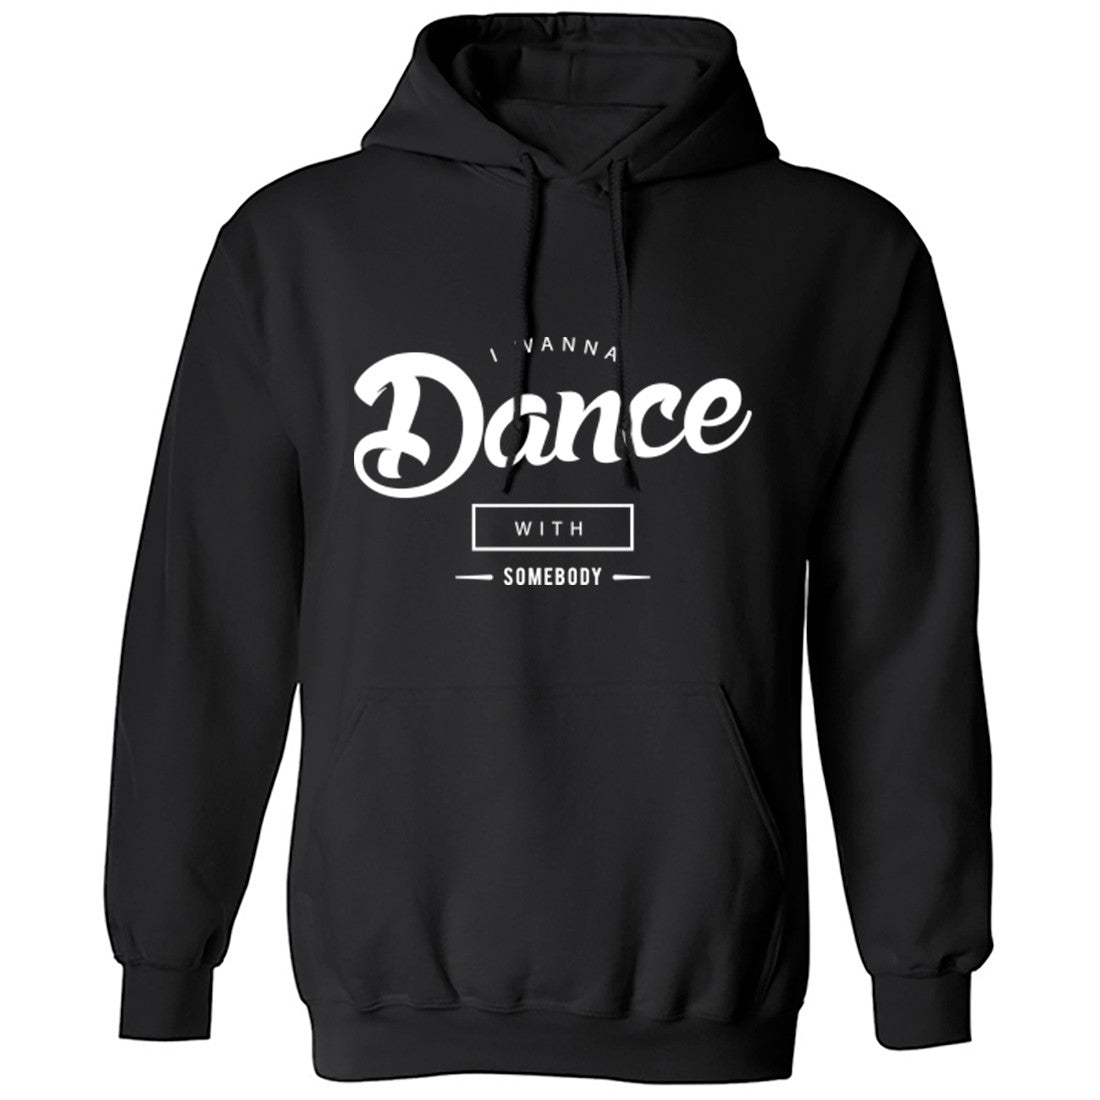 I Wanna' Dance With Somebody Unisex Hoodie K0089 - Illustrated Identity Ltd.